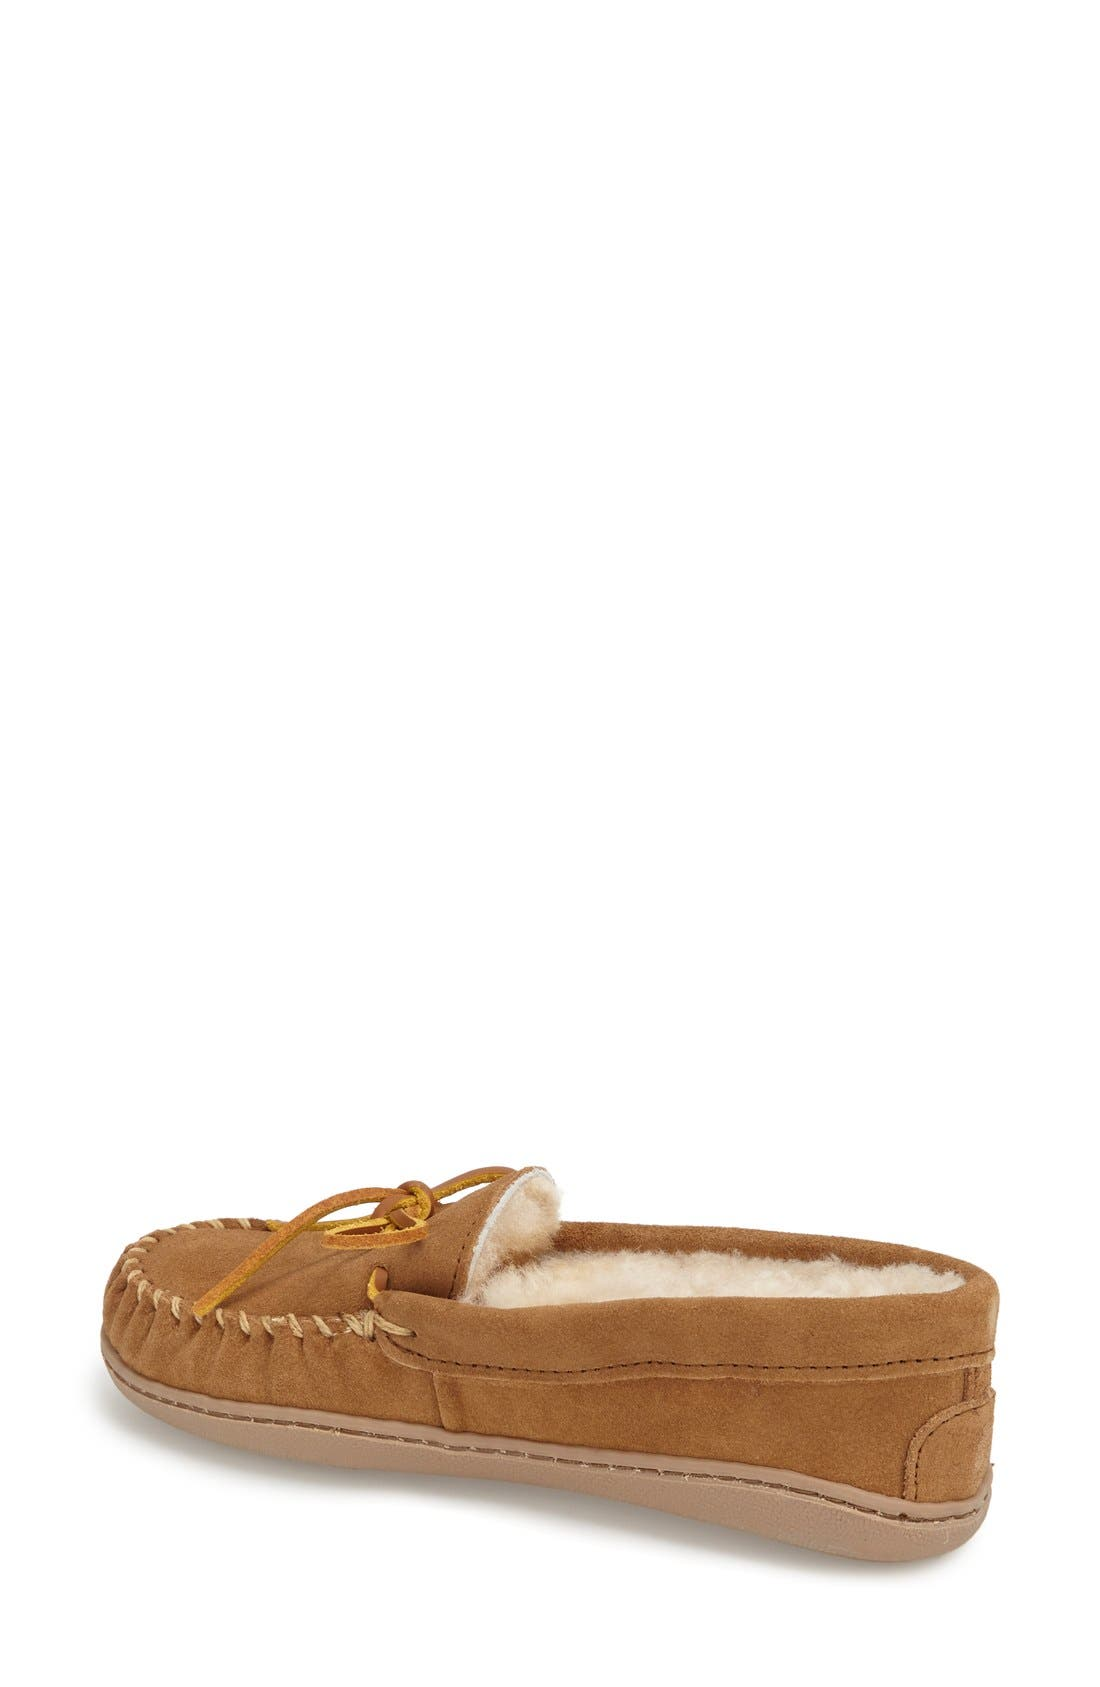 Sheepskin Hard Sole Moccasin Slipper,                             Alternate thumbnail 2, color,                             Tan Suede